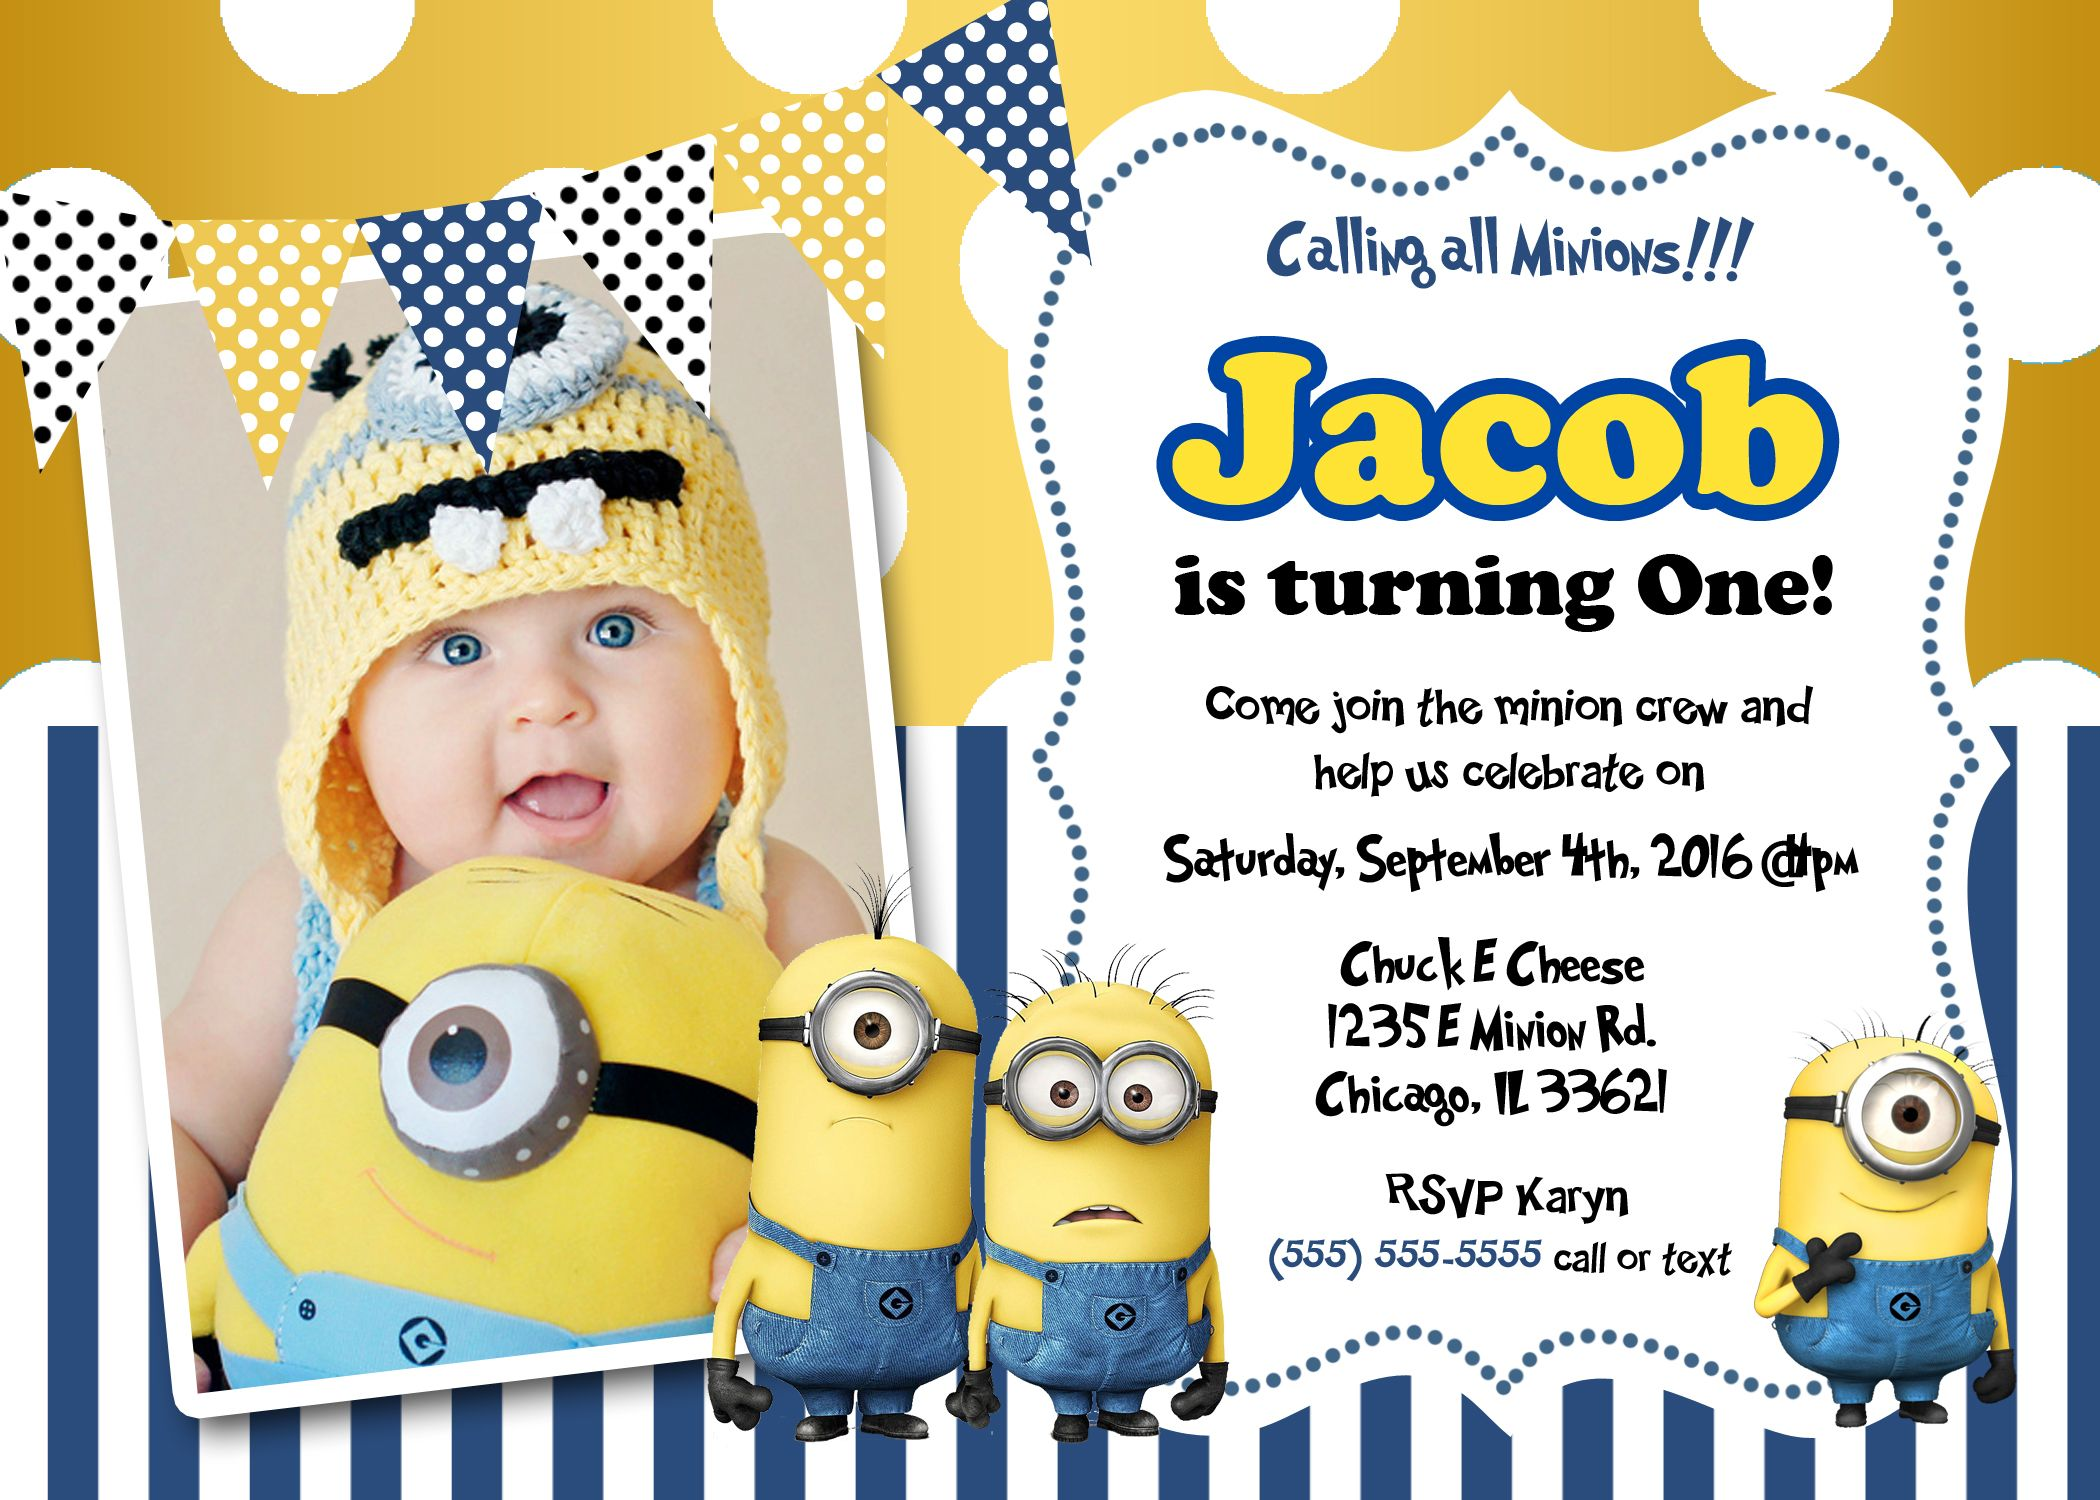 Unique Minion Birthday Invitations Ideas On Pinterest Minion - Birthday invitation template minions